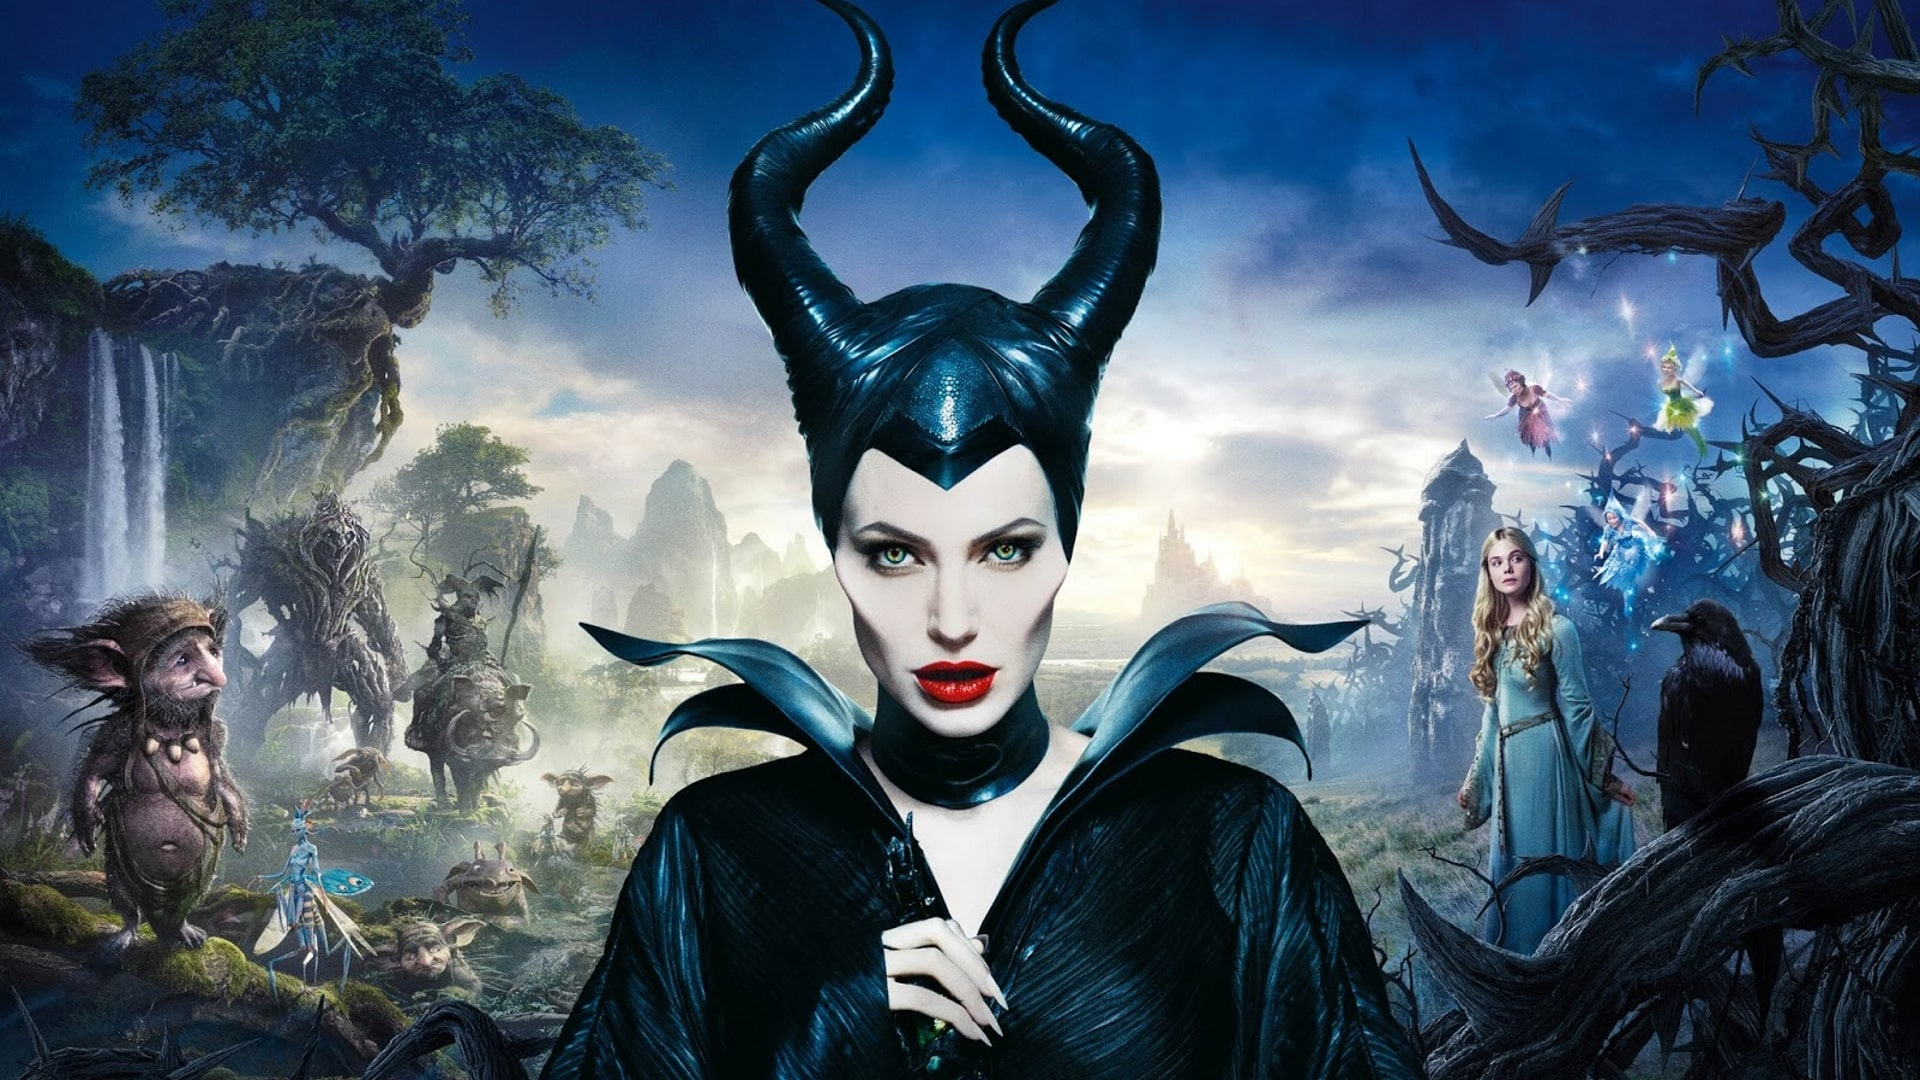 Maleficent 2 2020 Watch Full Movie for Free on Movies123